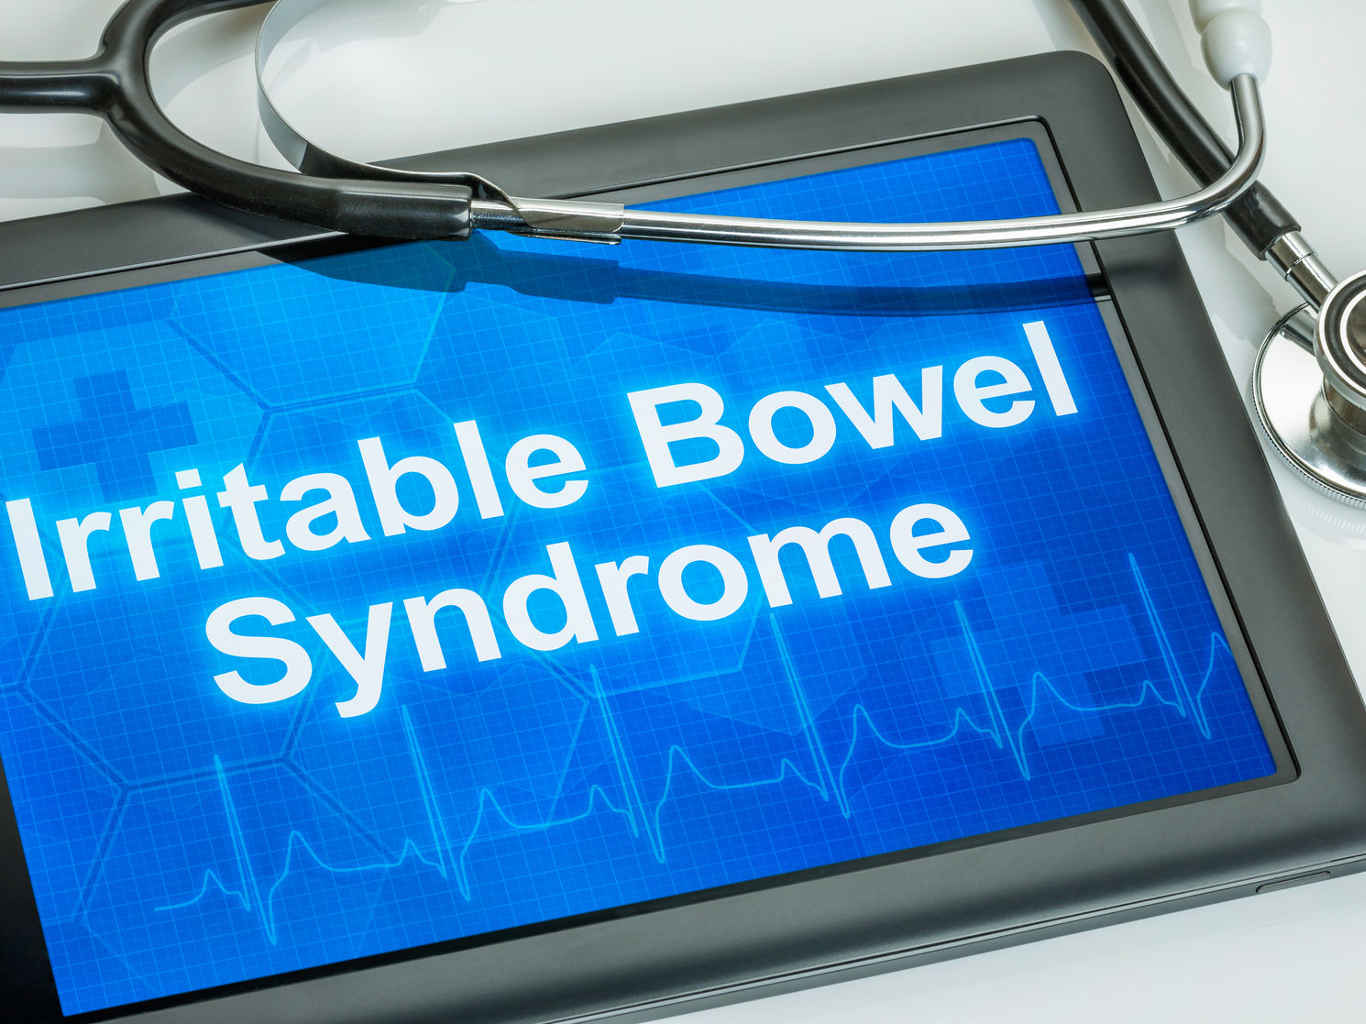 Tablet displaying 'Irritable Bowel Syndrome'.